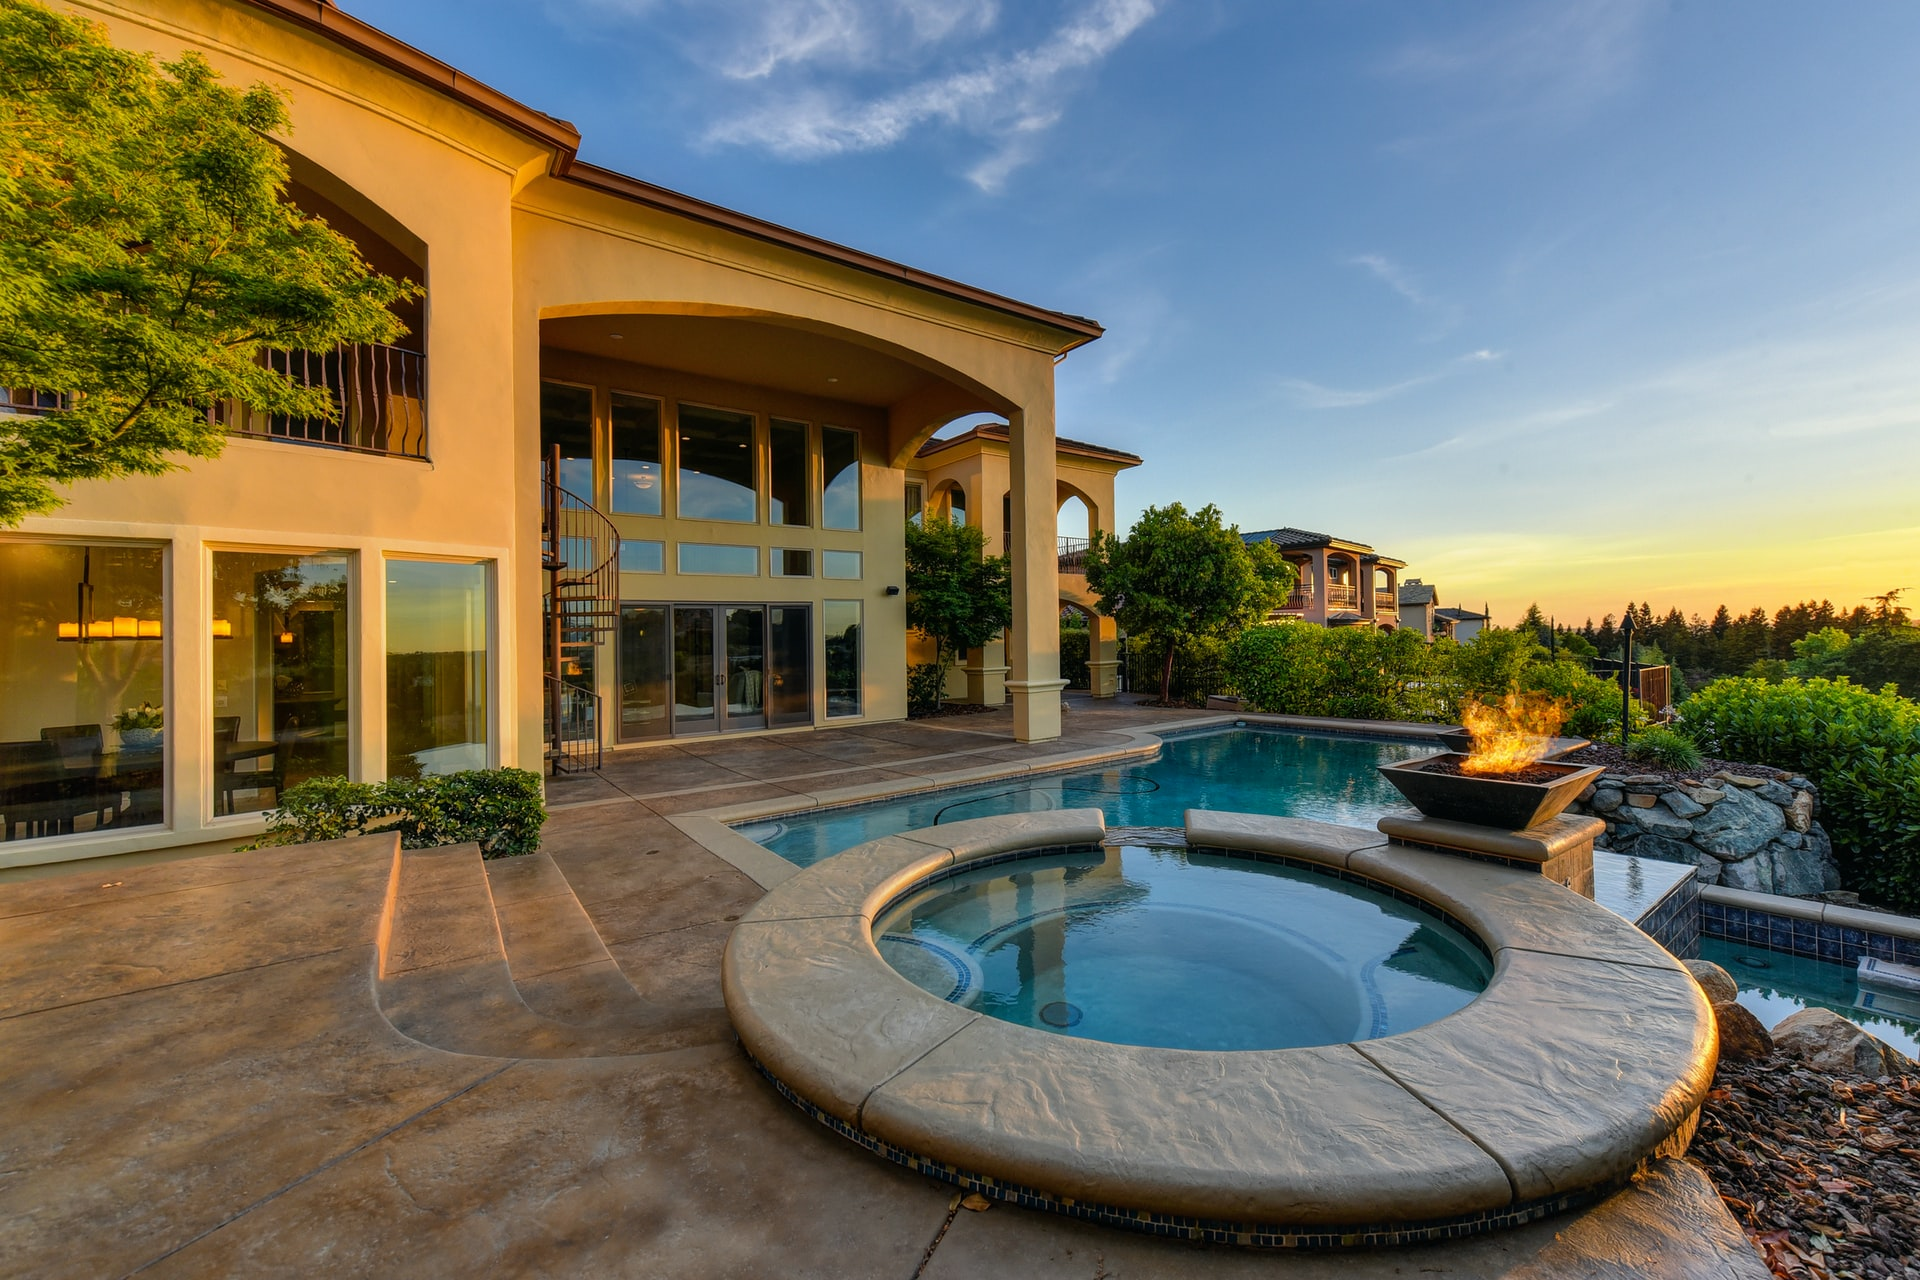 Want to Learn the Secret to Getting Your Dream Home?